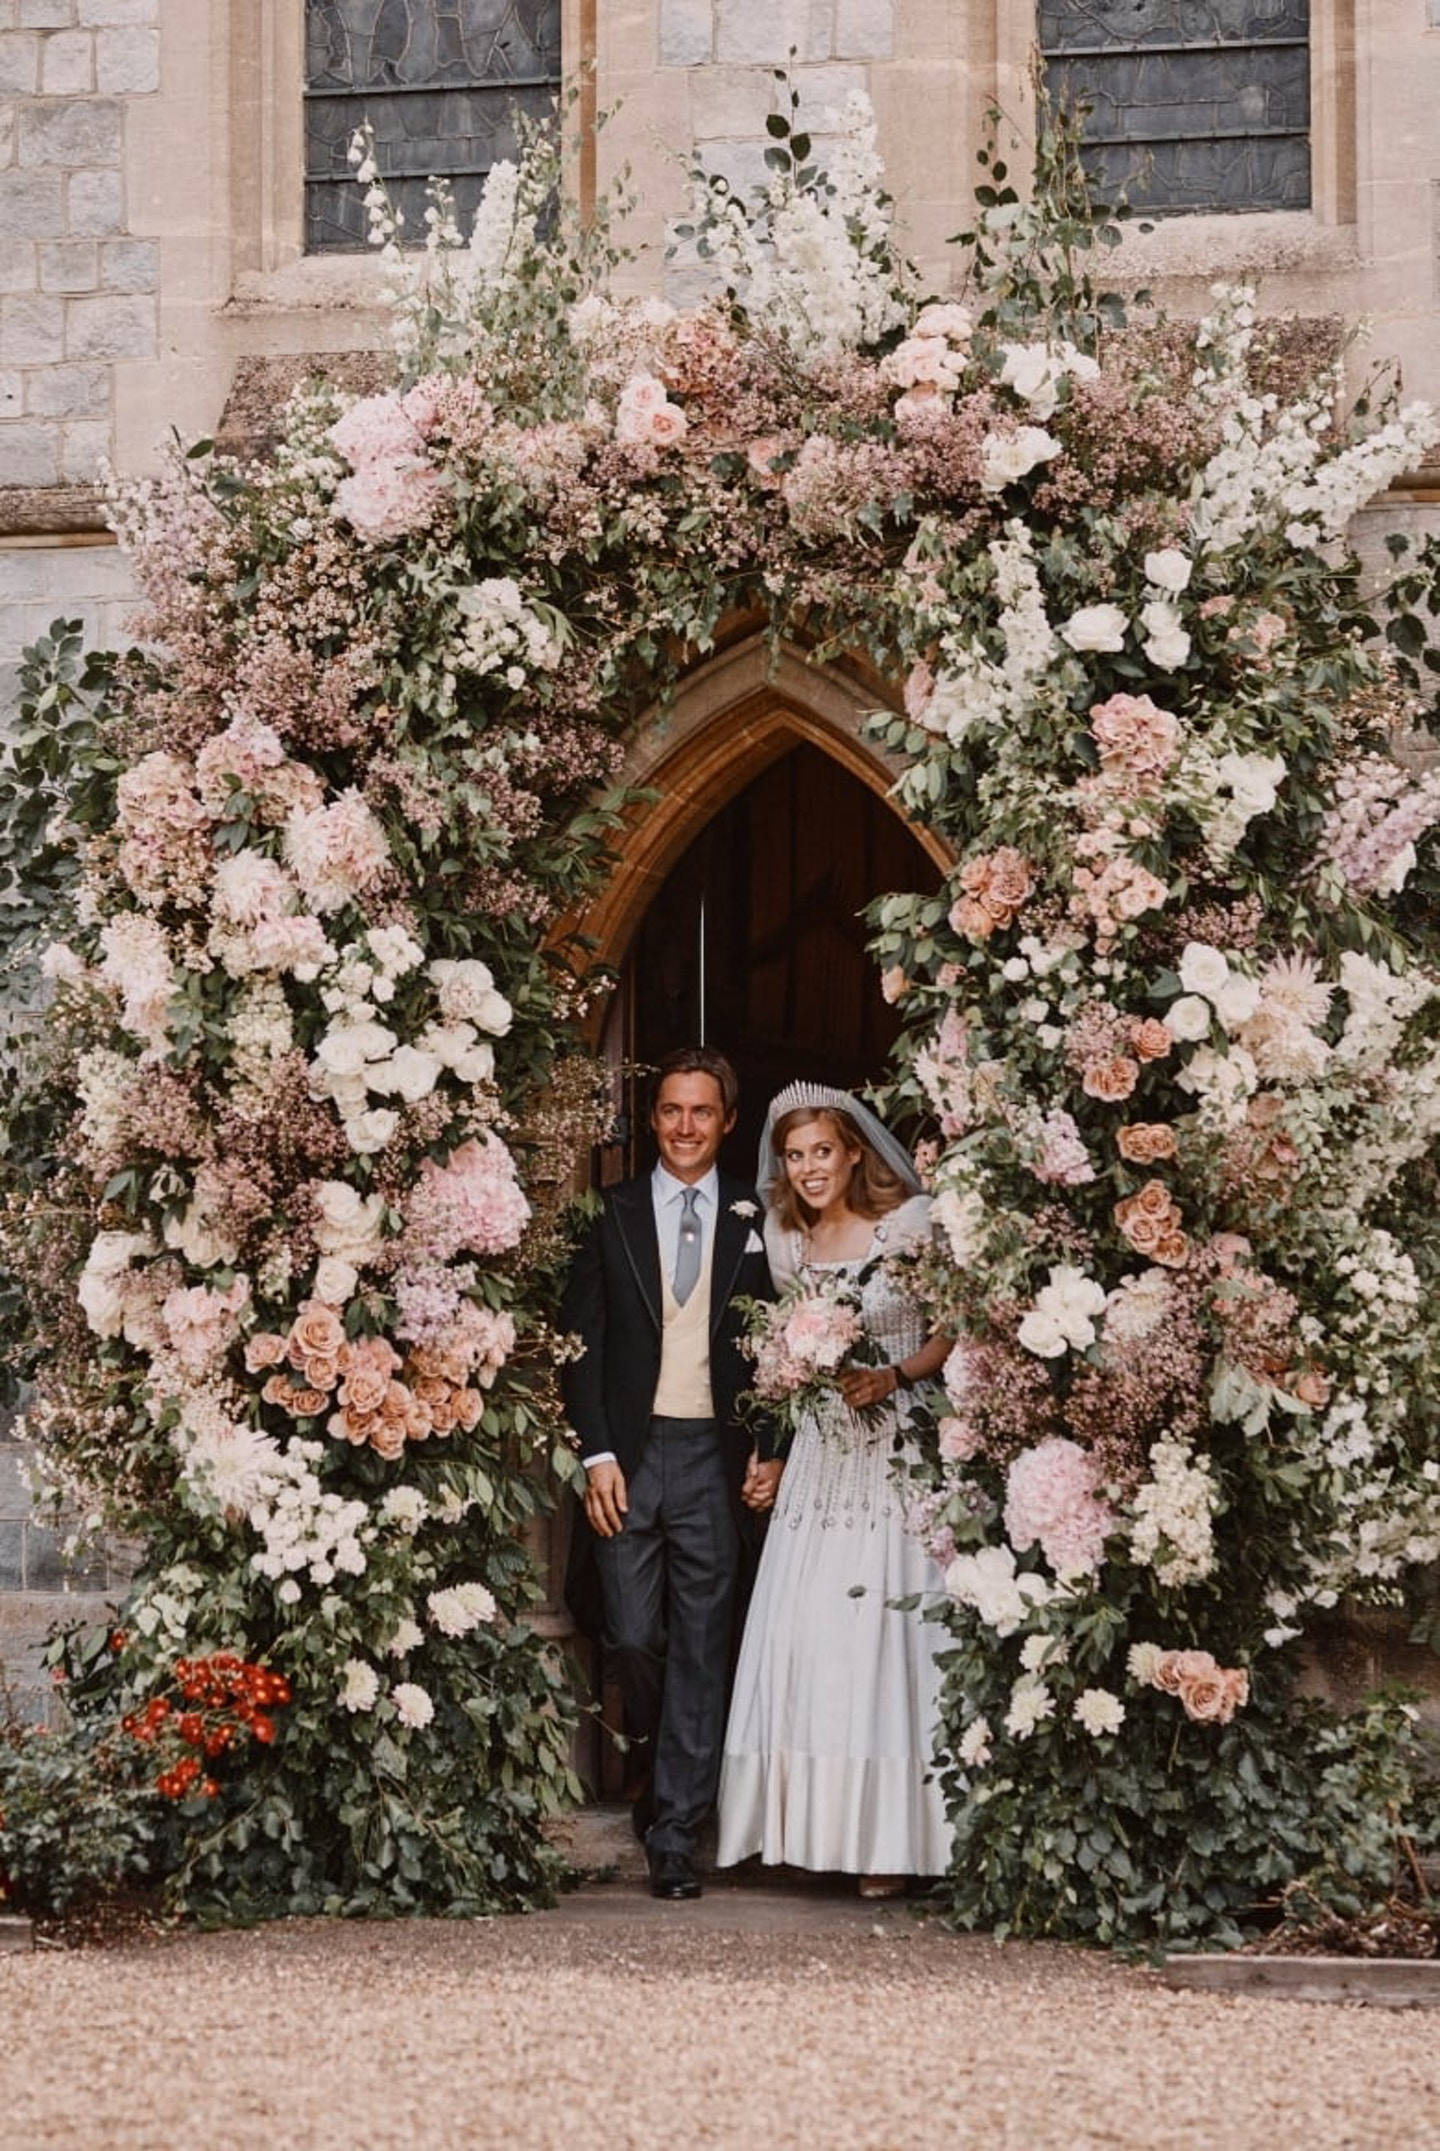 Princess Beatrice married Edoardo Mapello Mozzi in a private ceremony in Windsor. Her vintage Norman Hartnell dress was worn by Queen Elizabeth. The low-key wedding was a surprise, and a departure from the pomp & circumstance of the Royal Family, but still had all the class, heart and beauty we expect.